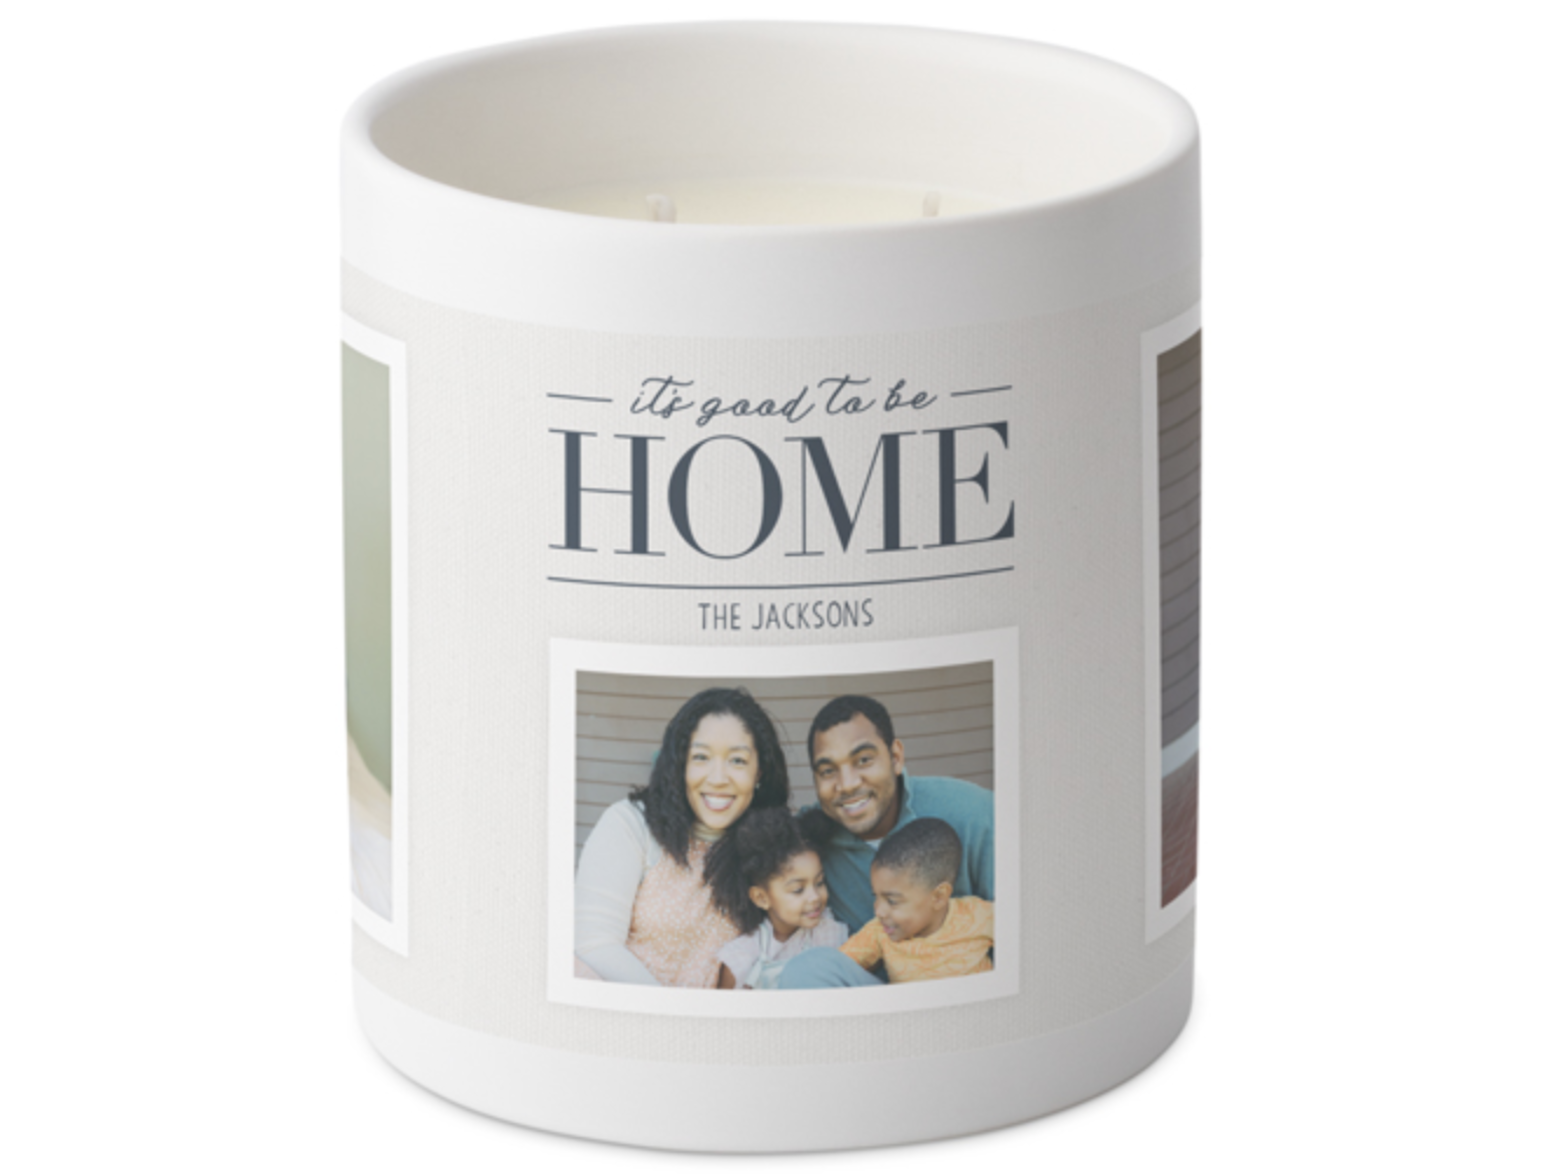 """Customized candle that says """"It's good to be home, The Jacksons"""" with a picture of a family"""